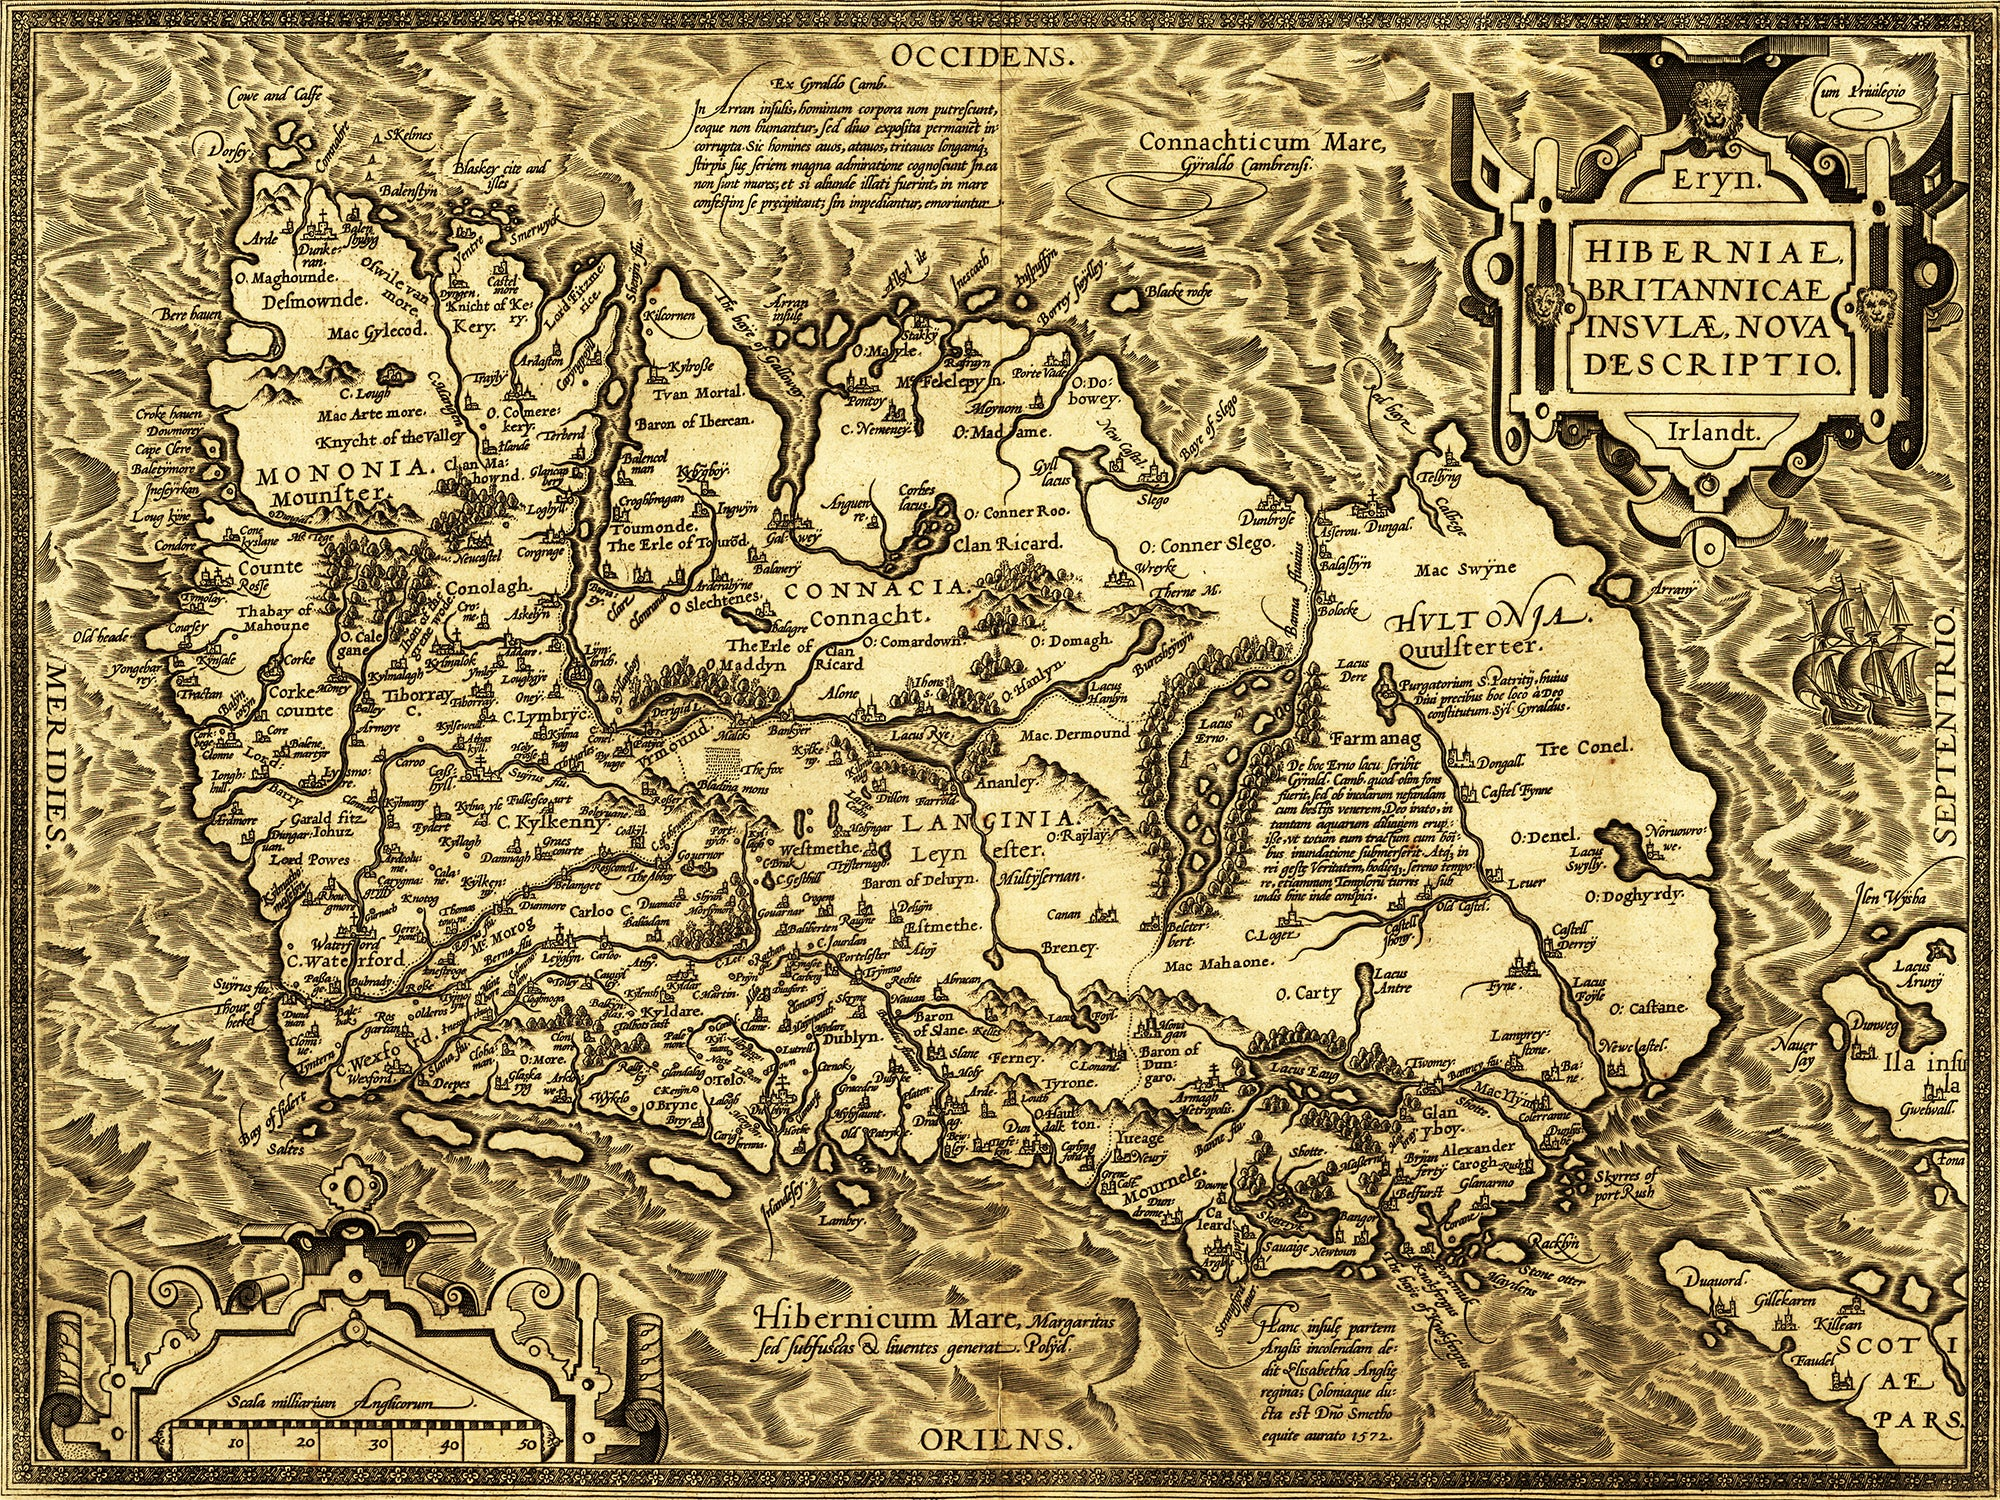 Oldest Map Of Ireland.This Is The Oldest Known Map Of Ireland Circa 1573 2000x1500